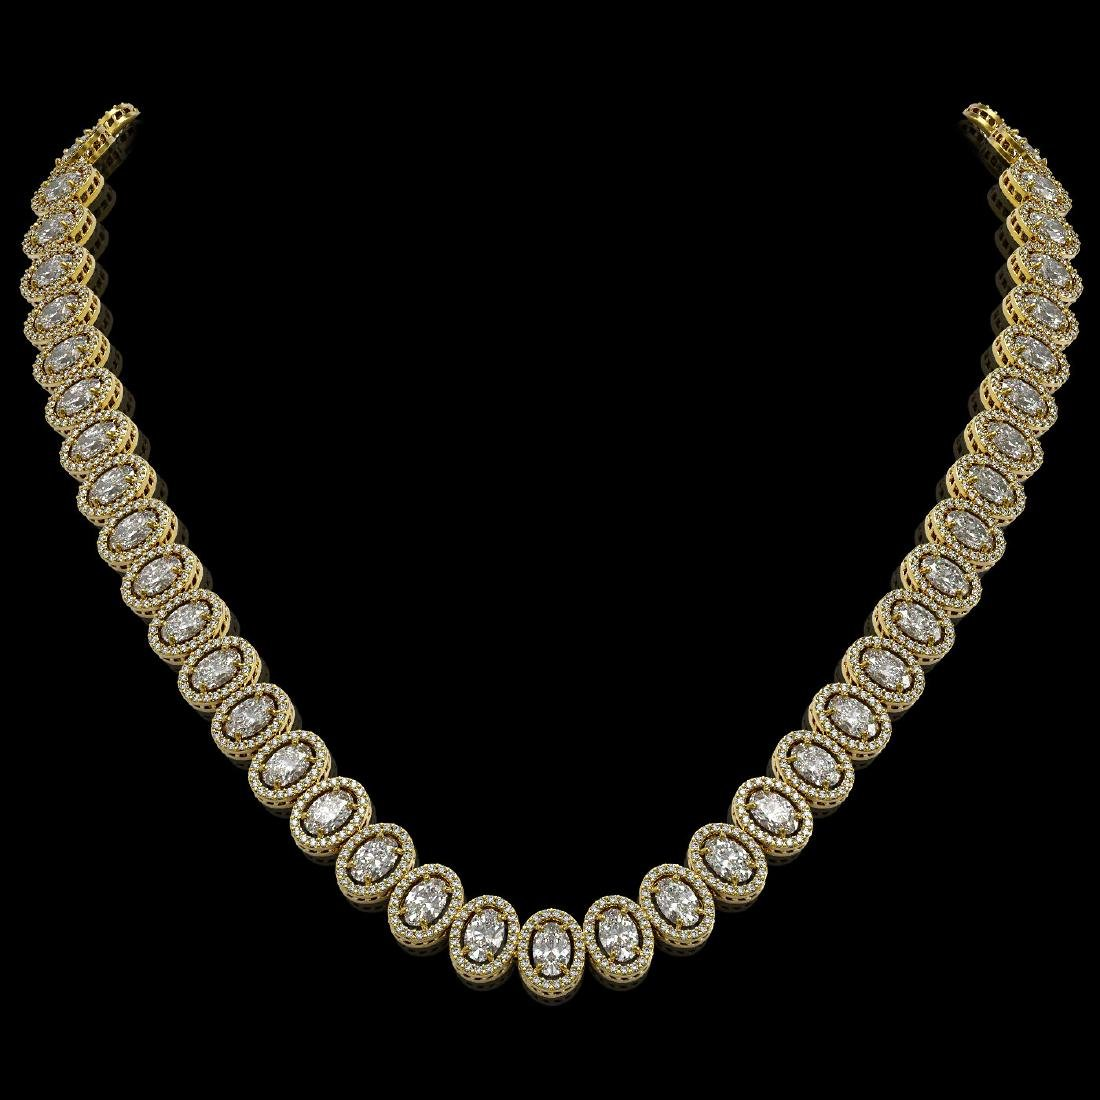 34.72 CTW Oval Diamond Designer Necklace 18K Yellow